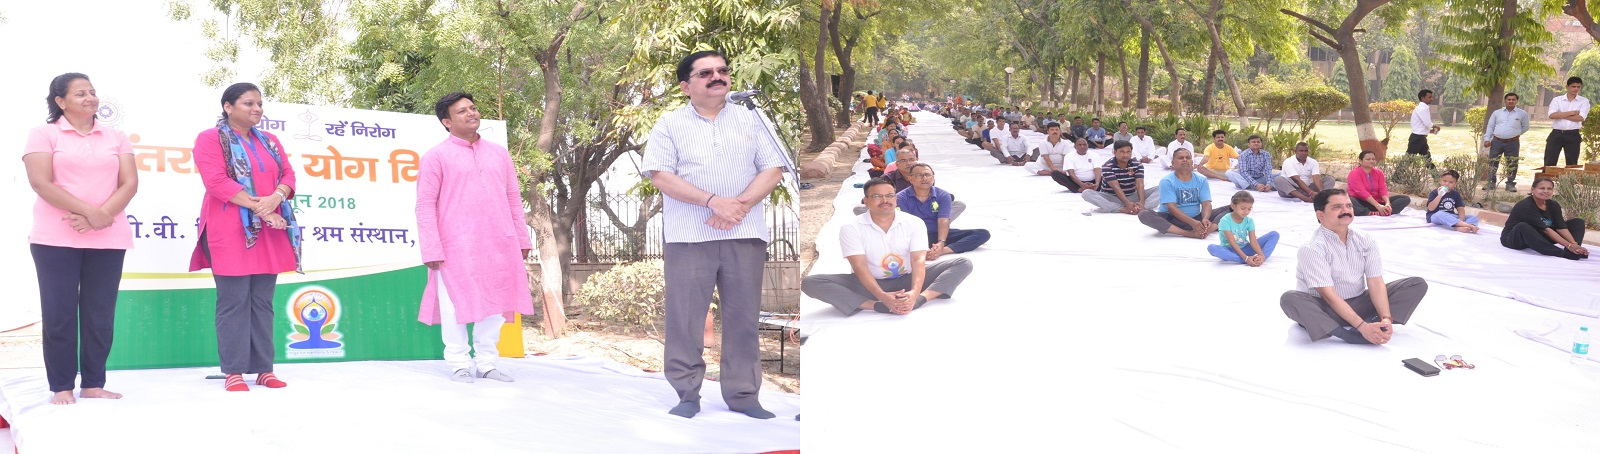 The 4th International Yoga Day has been observed on 21st June, 2018 at VVGNLI.  Dr. H. Srinivas, Director General addressed the gathering of around 150 officials & trainees and emphasized the importance of Yoga and its benefits in our daily life. Yoga exe